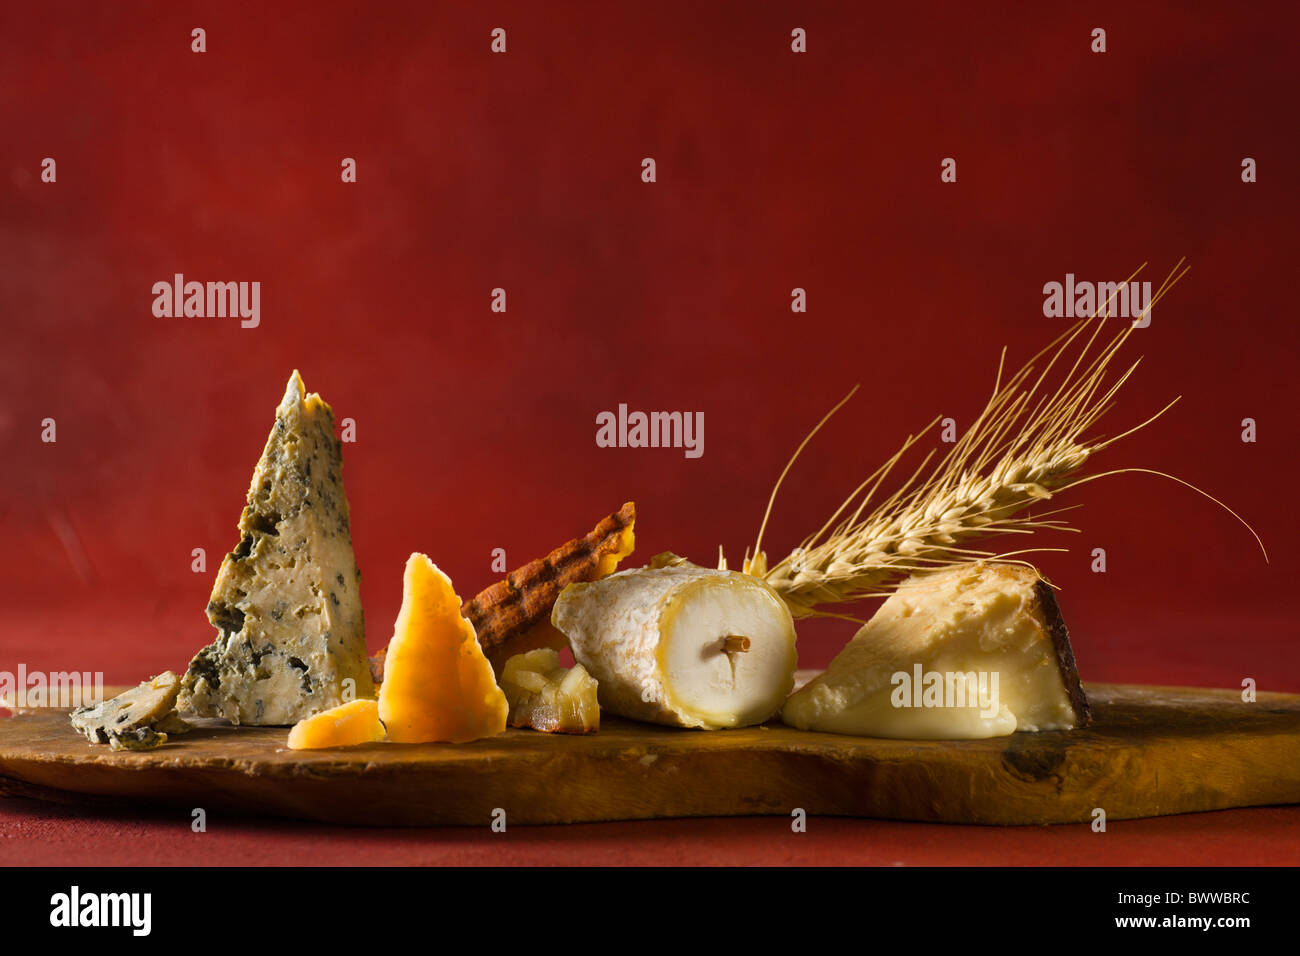 A wood cuttingboard with, from left to right: Cabrales (Cow - Spain), Roomano (Cow - Holland), Majorero Pimenton (Goat - Canary Stock Photo